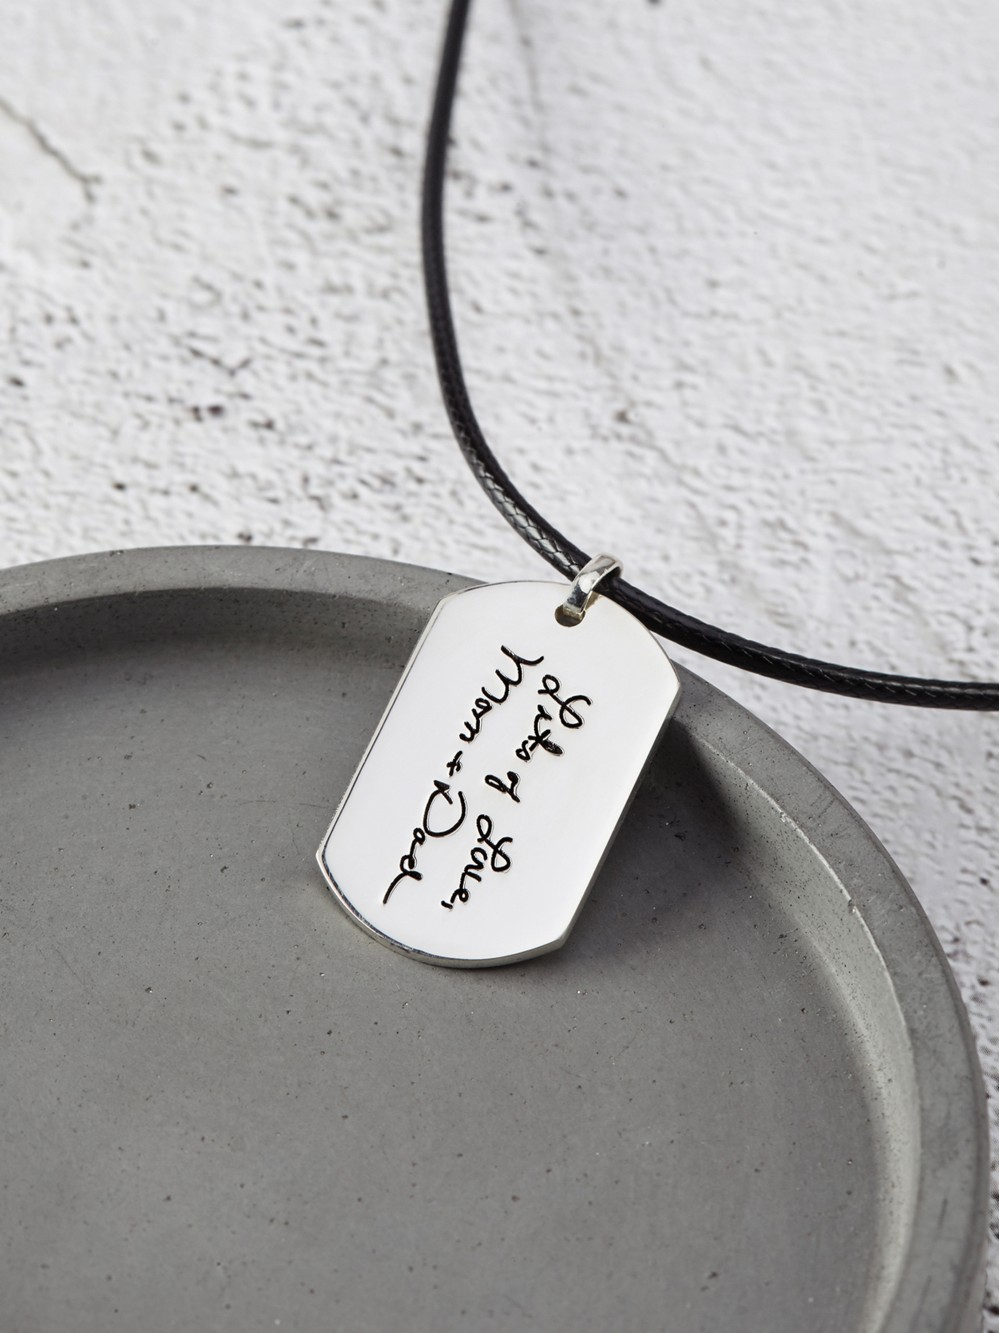 Handwriting Necklace for Men - Leather Cord